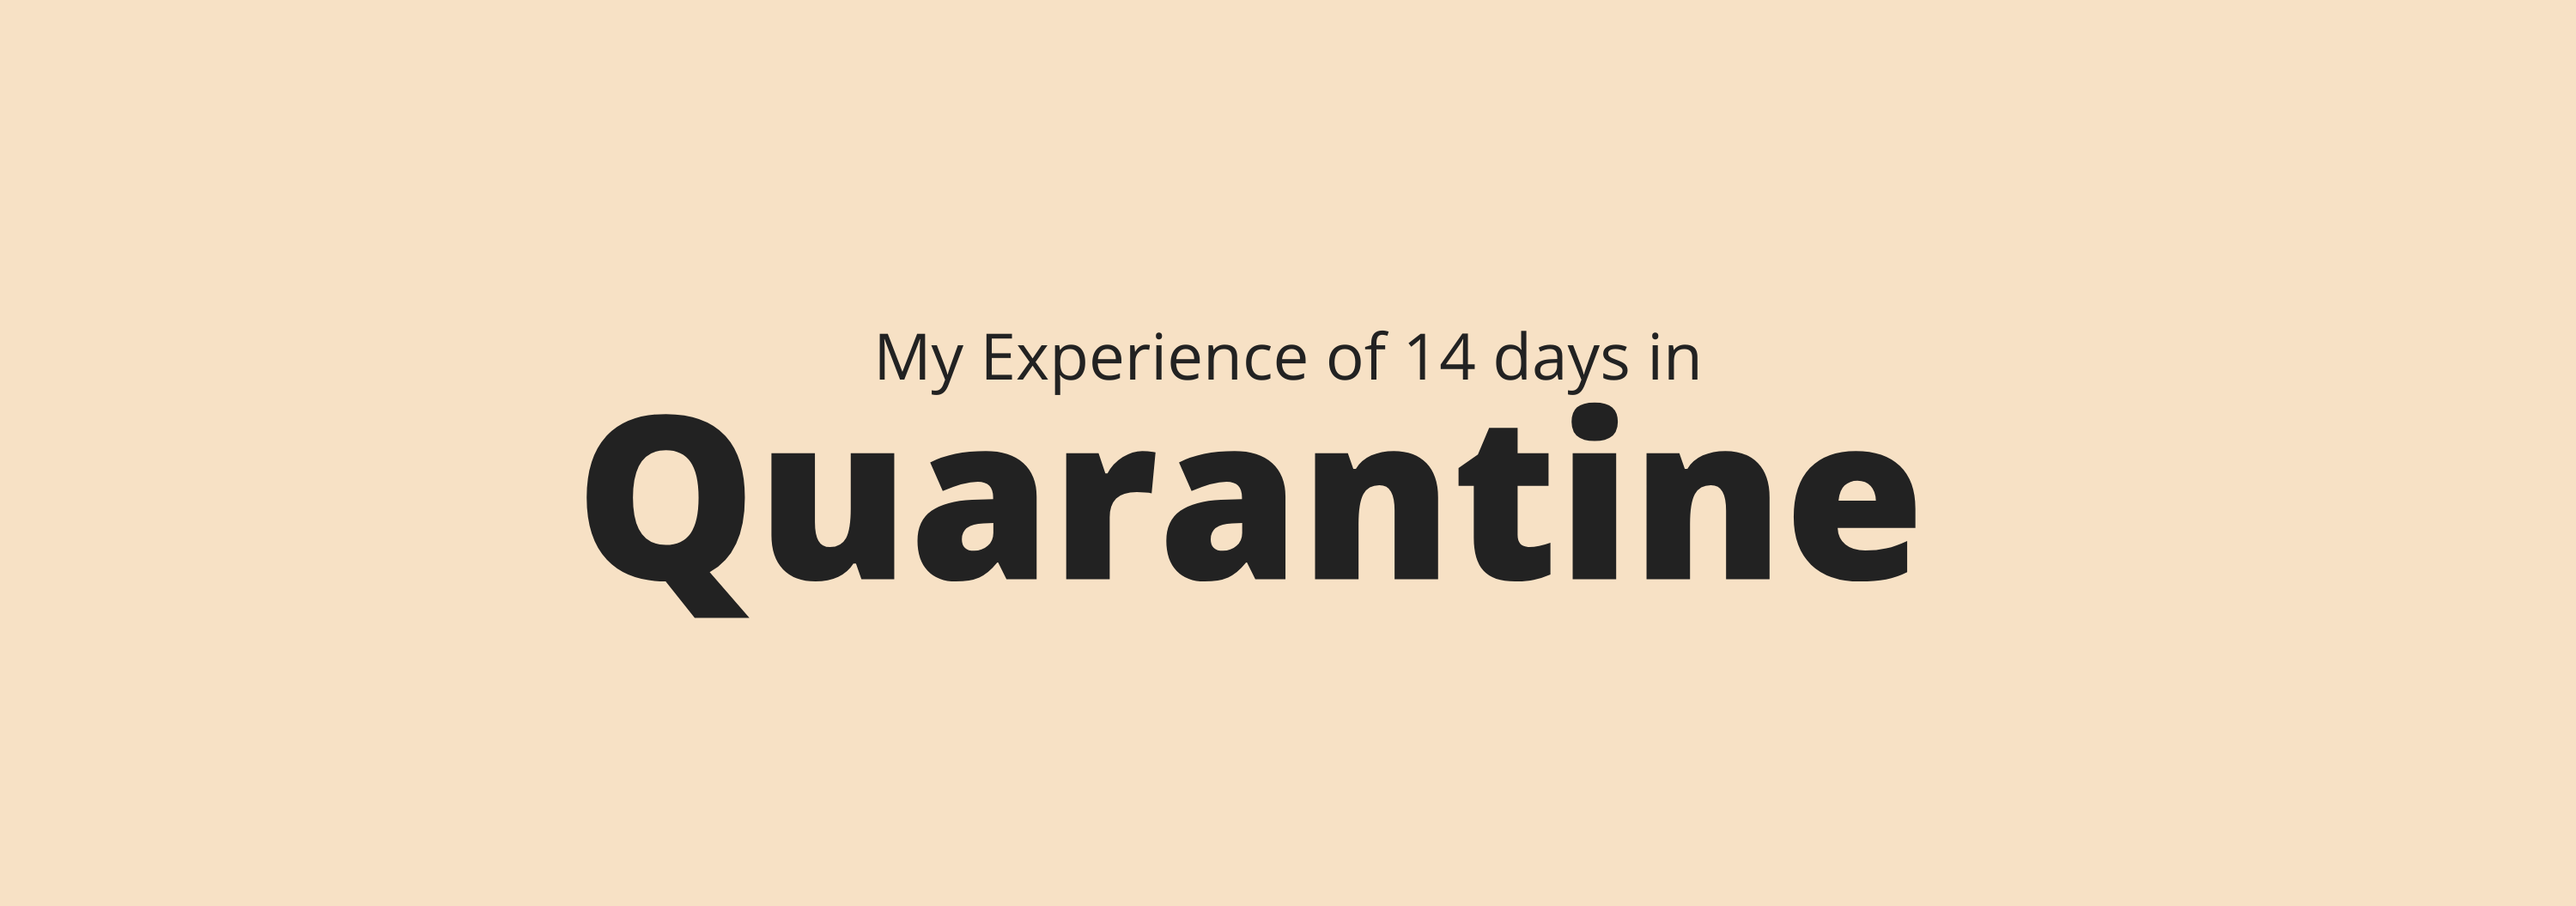 My Experience of 14 Days in Quarantine  header image